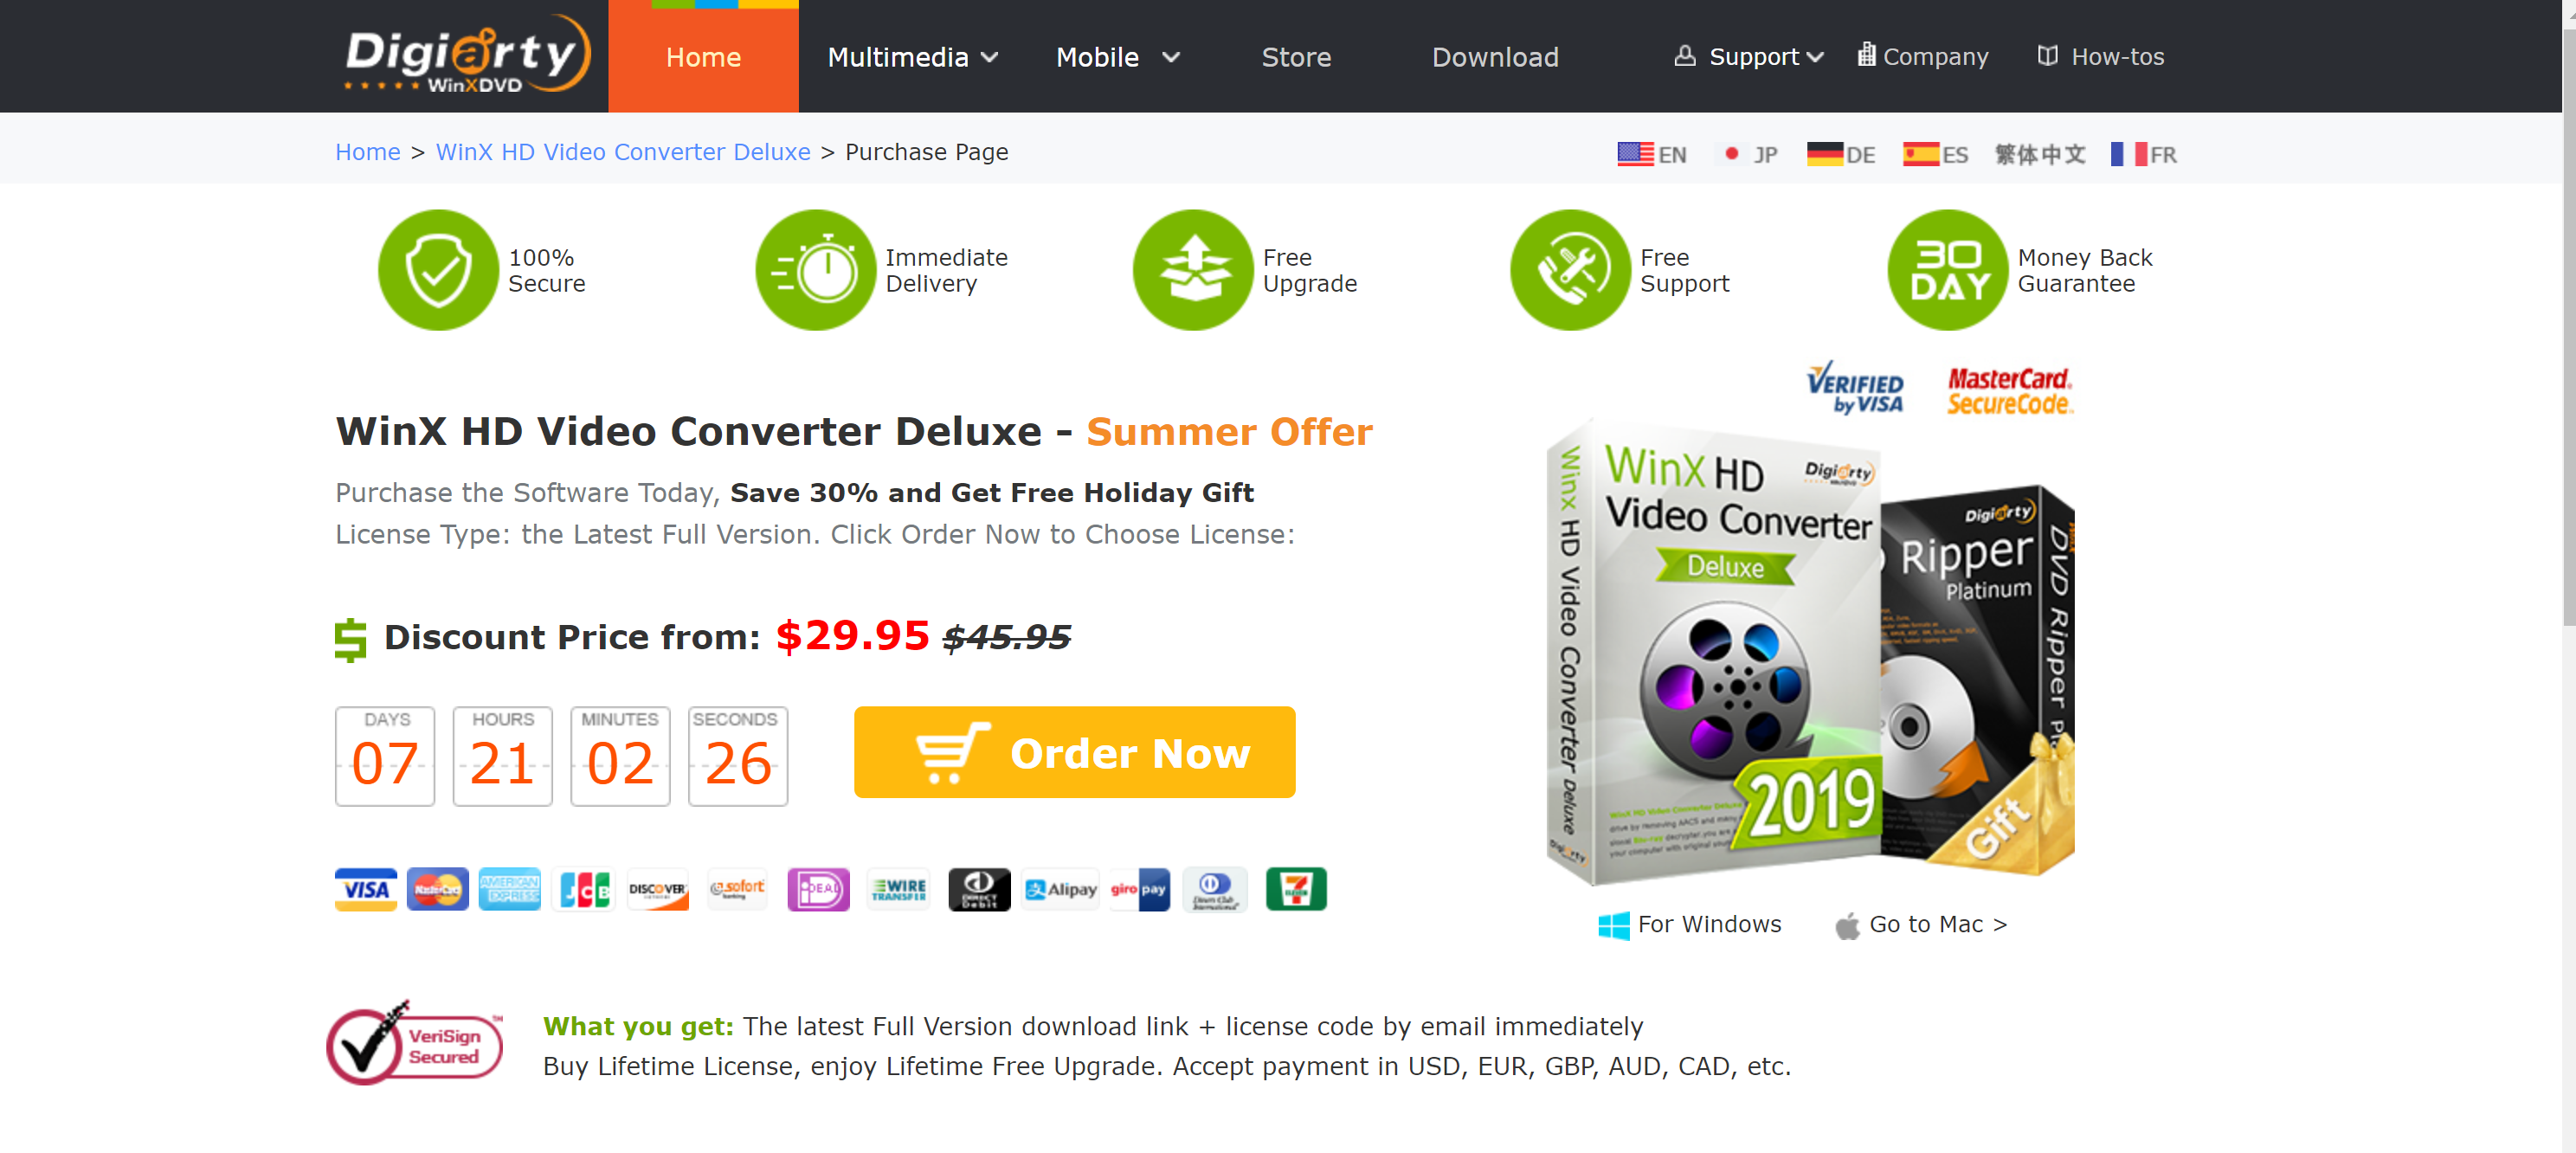 _OFFICIAL Purchase WinX HD Video Converter Deluxe Full License - Lifetime Free Upgrade